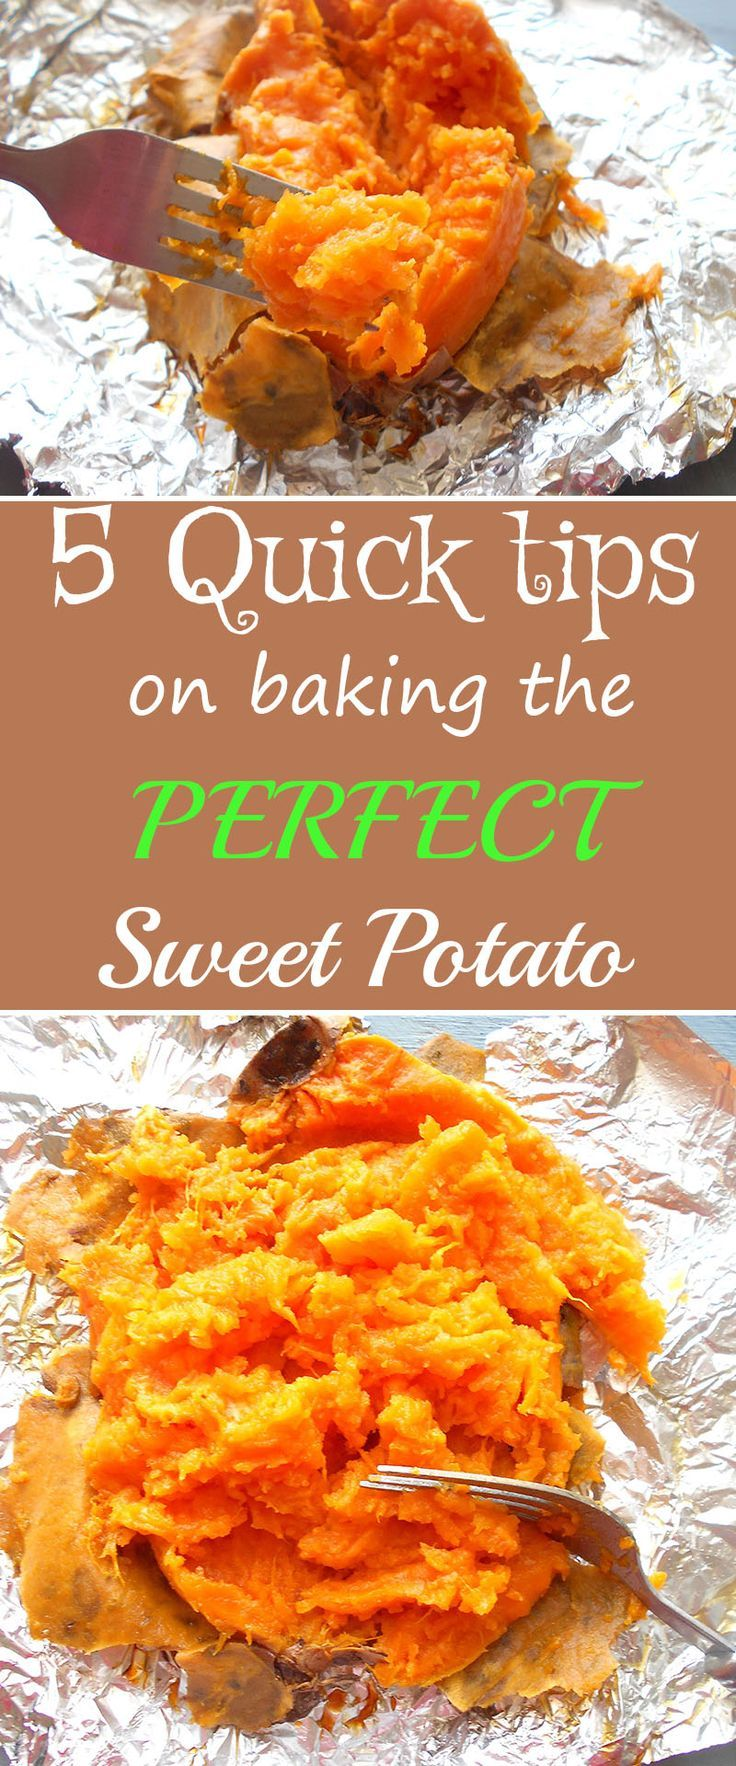 5 Tips For Baking The Perfect Sweet Potato | Recipe ...